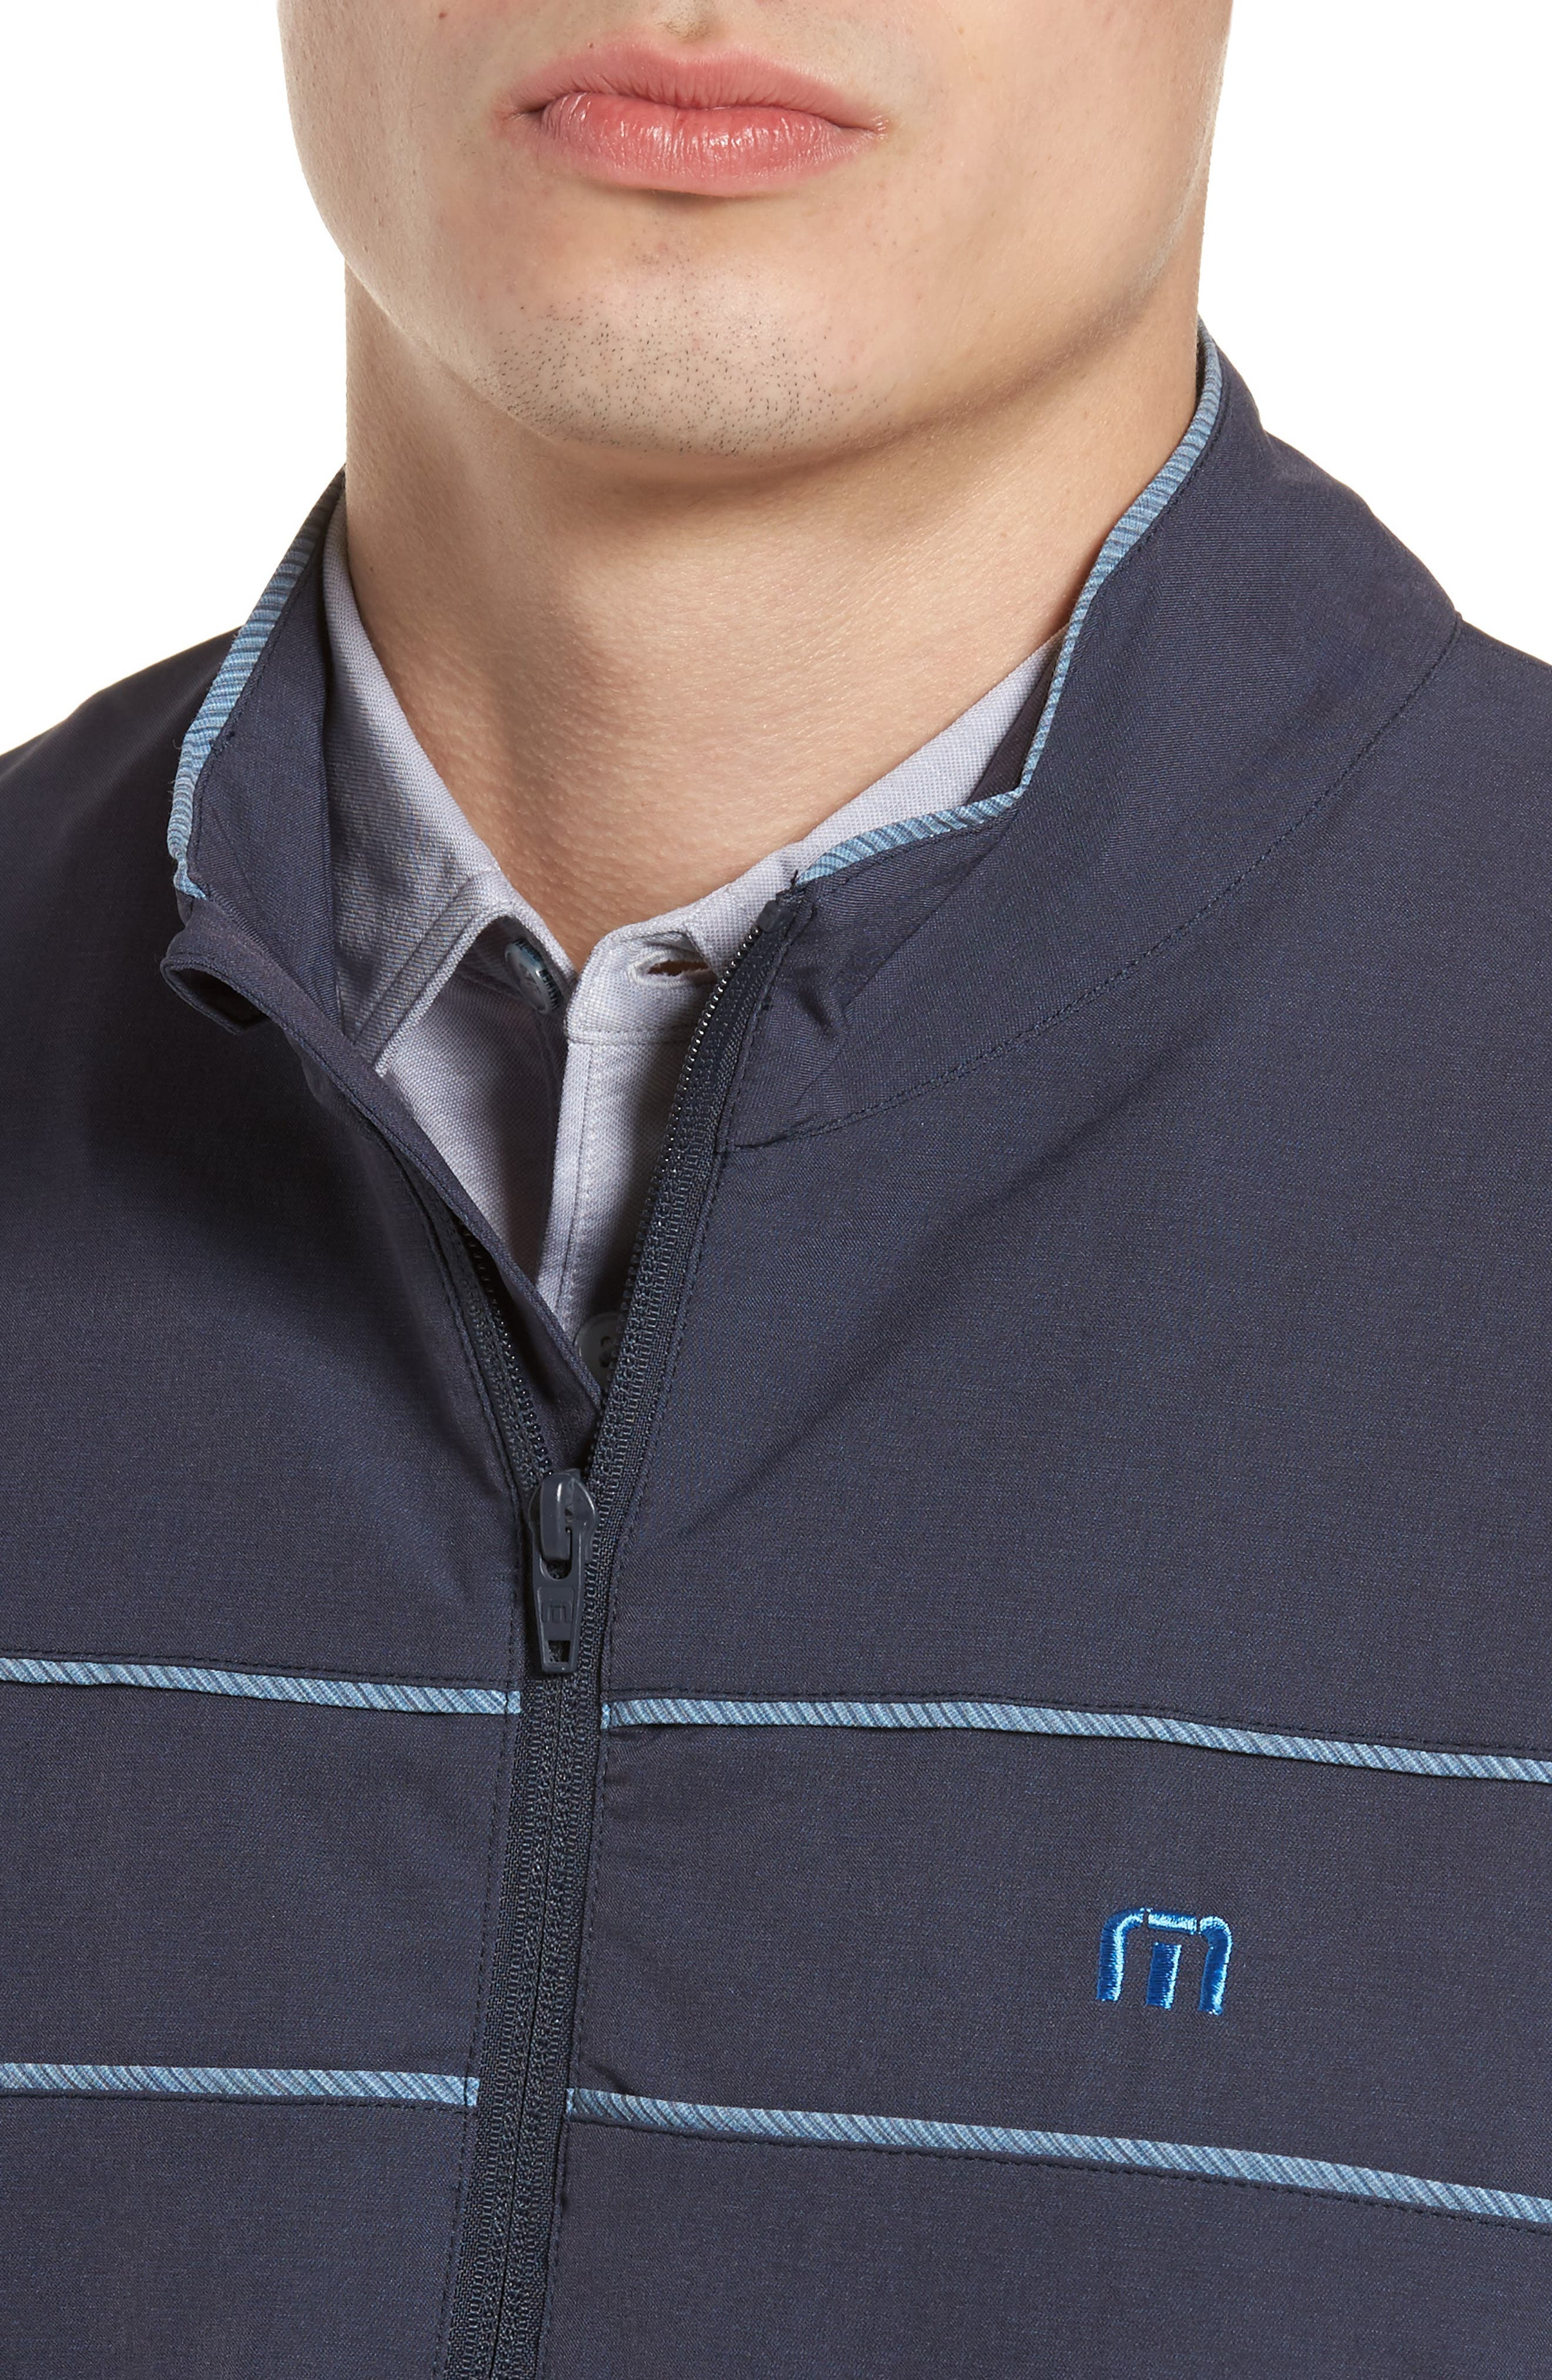 Leon Half Zip Pullover,                             Alternate thumbnail 4, color,                             Blue Nights/ French Blue